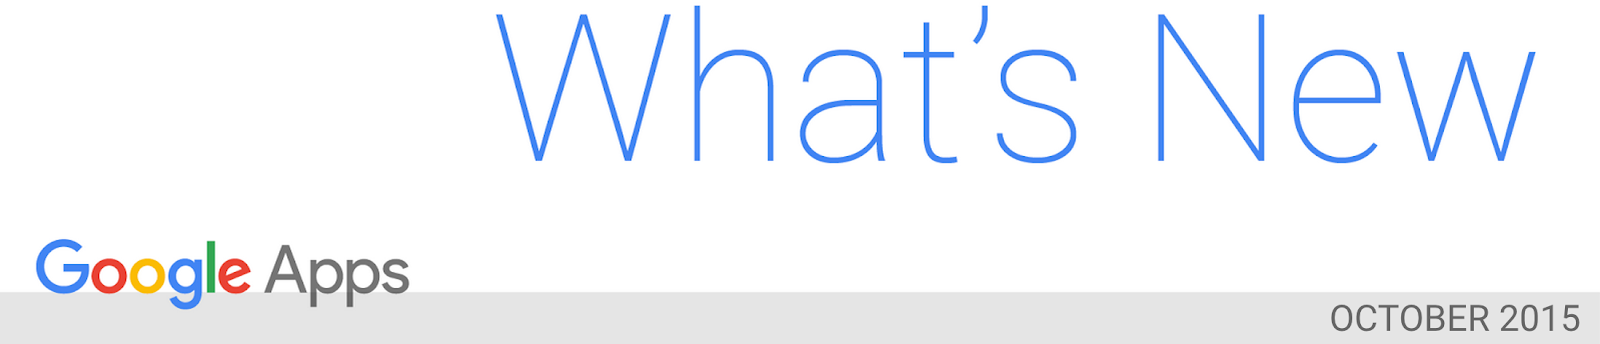 What's New in Apps newsletter header image